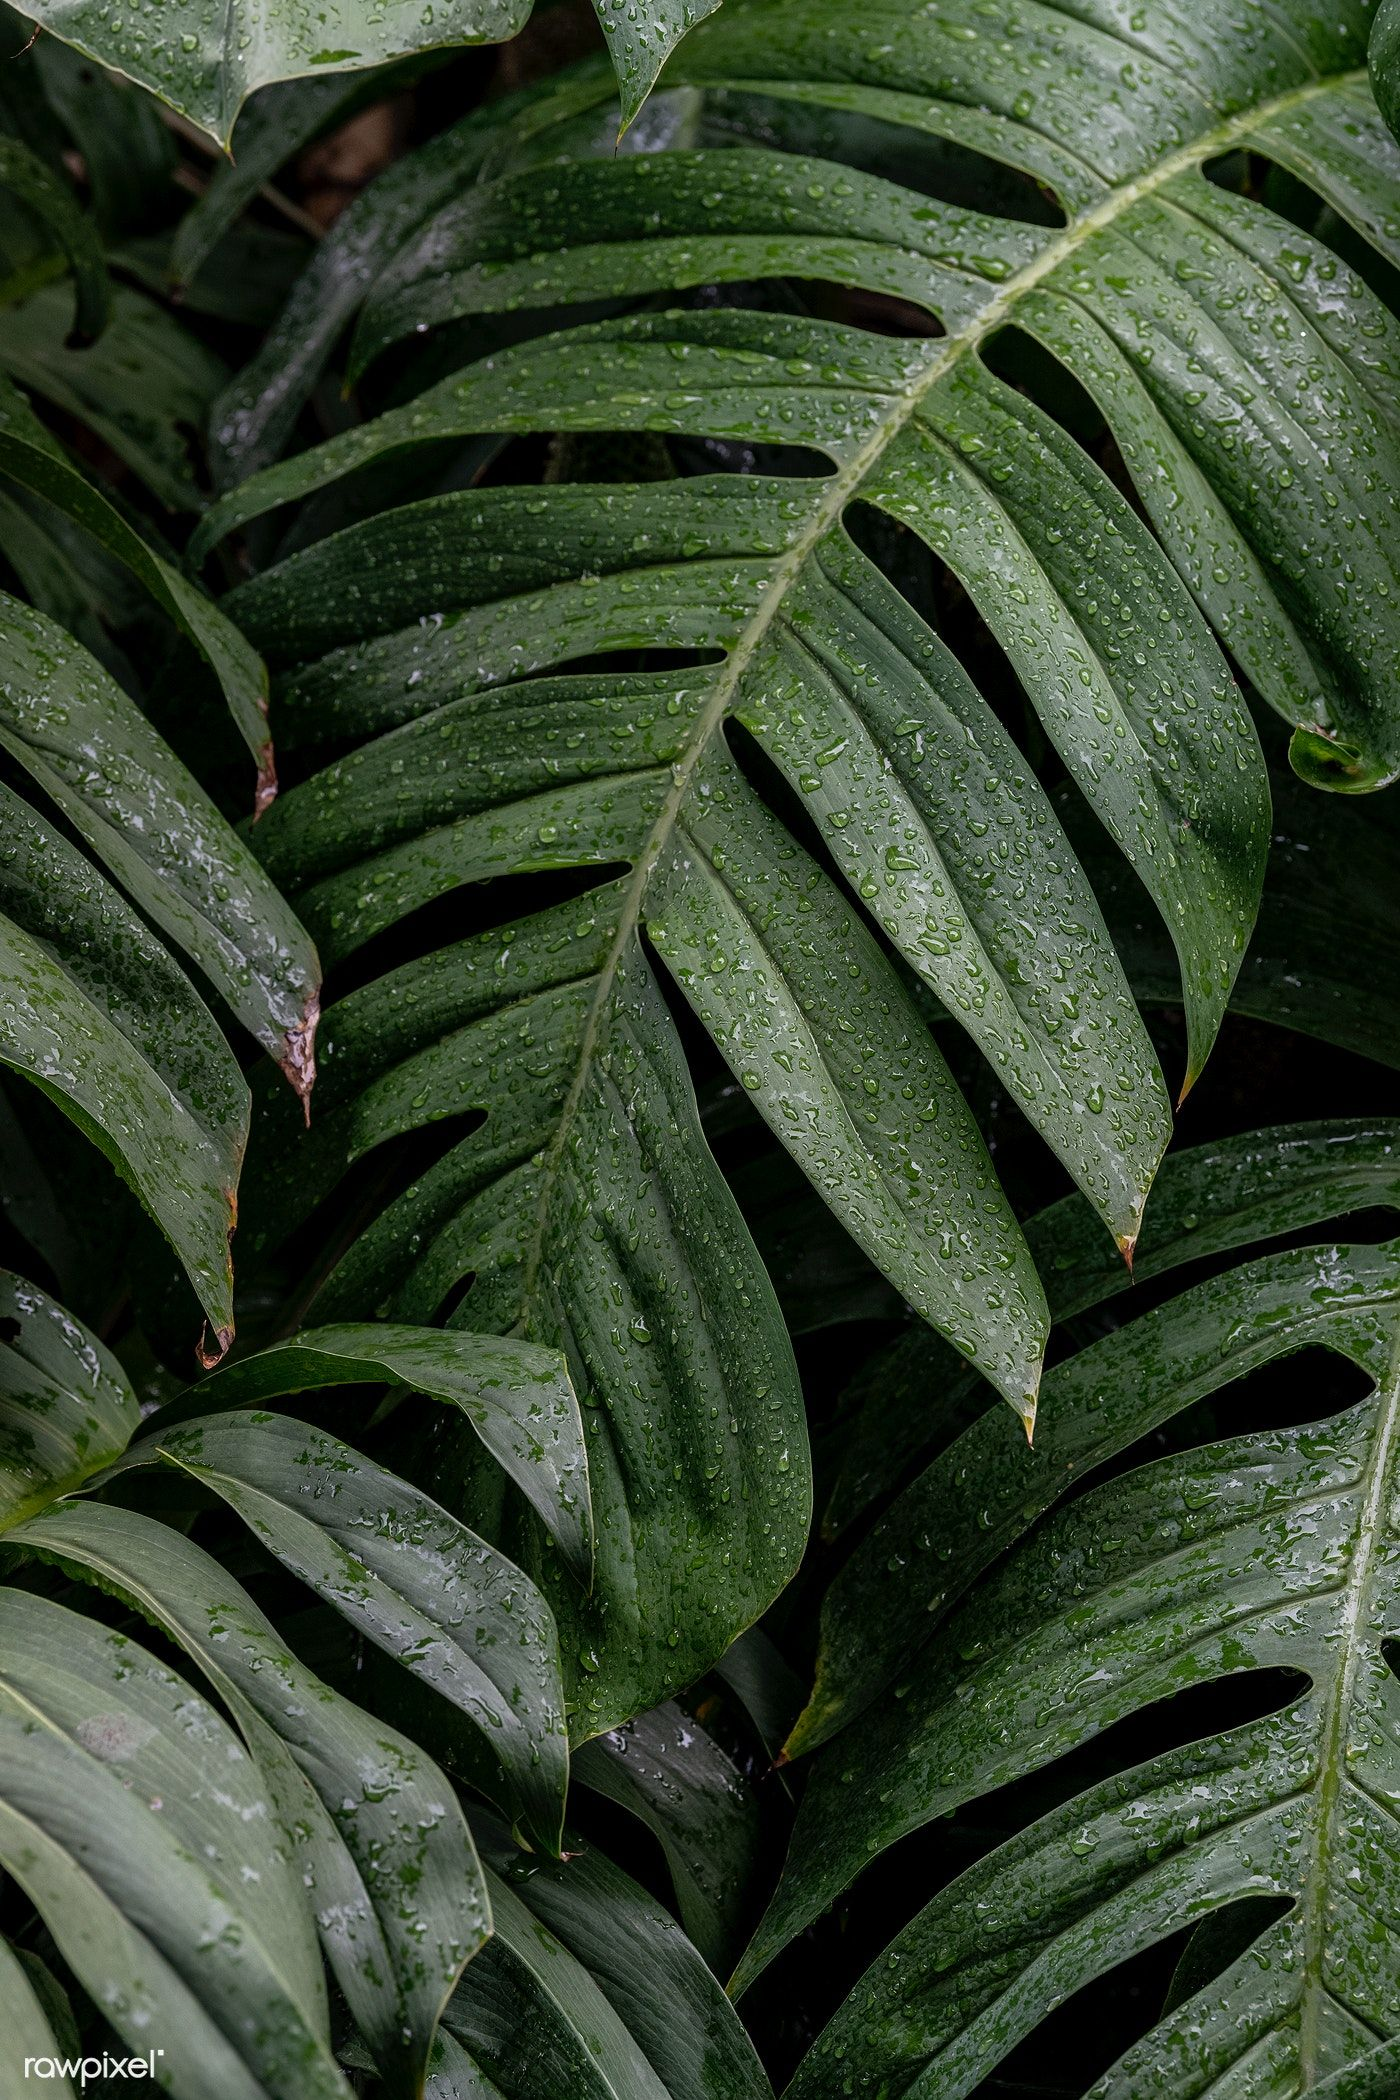 Download premium image of Wet Monstera deliciosa plant leaves in a garden